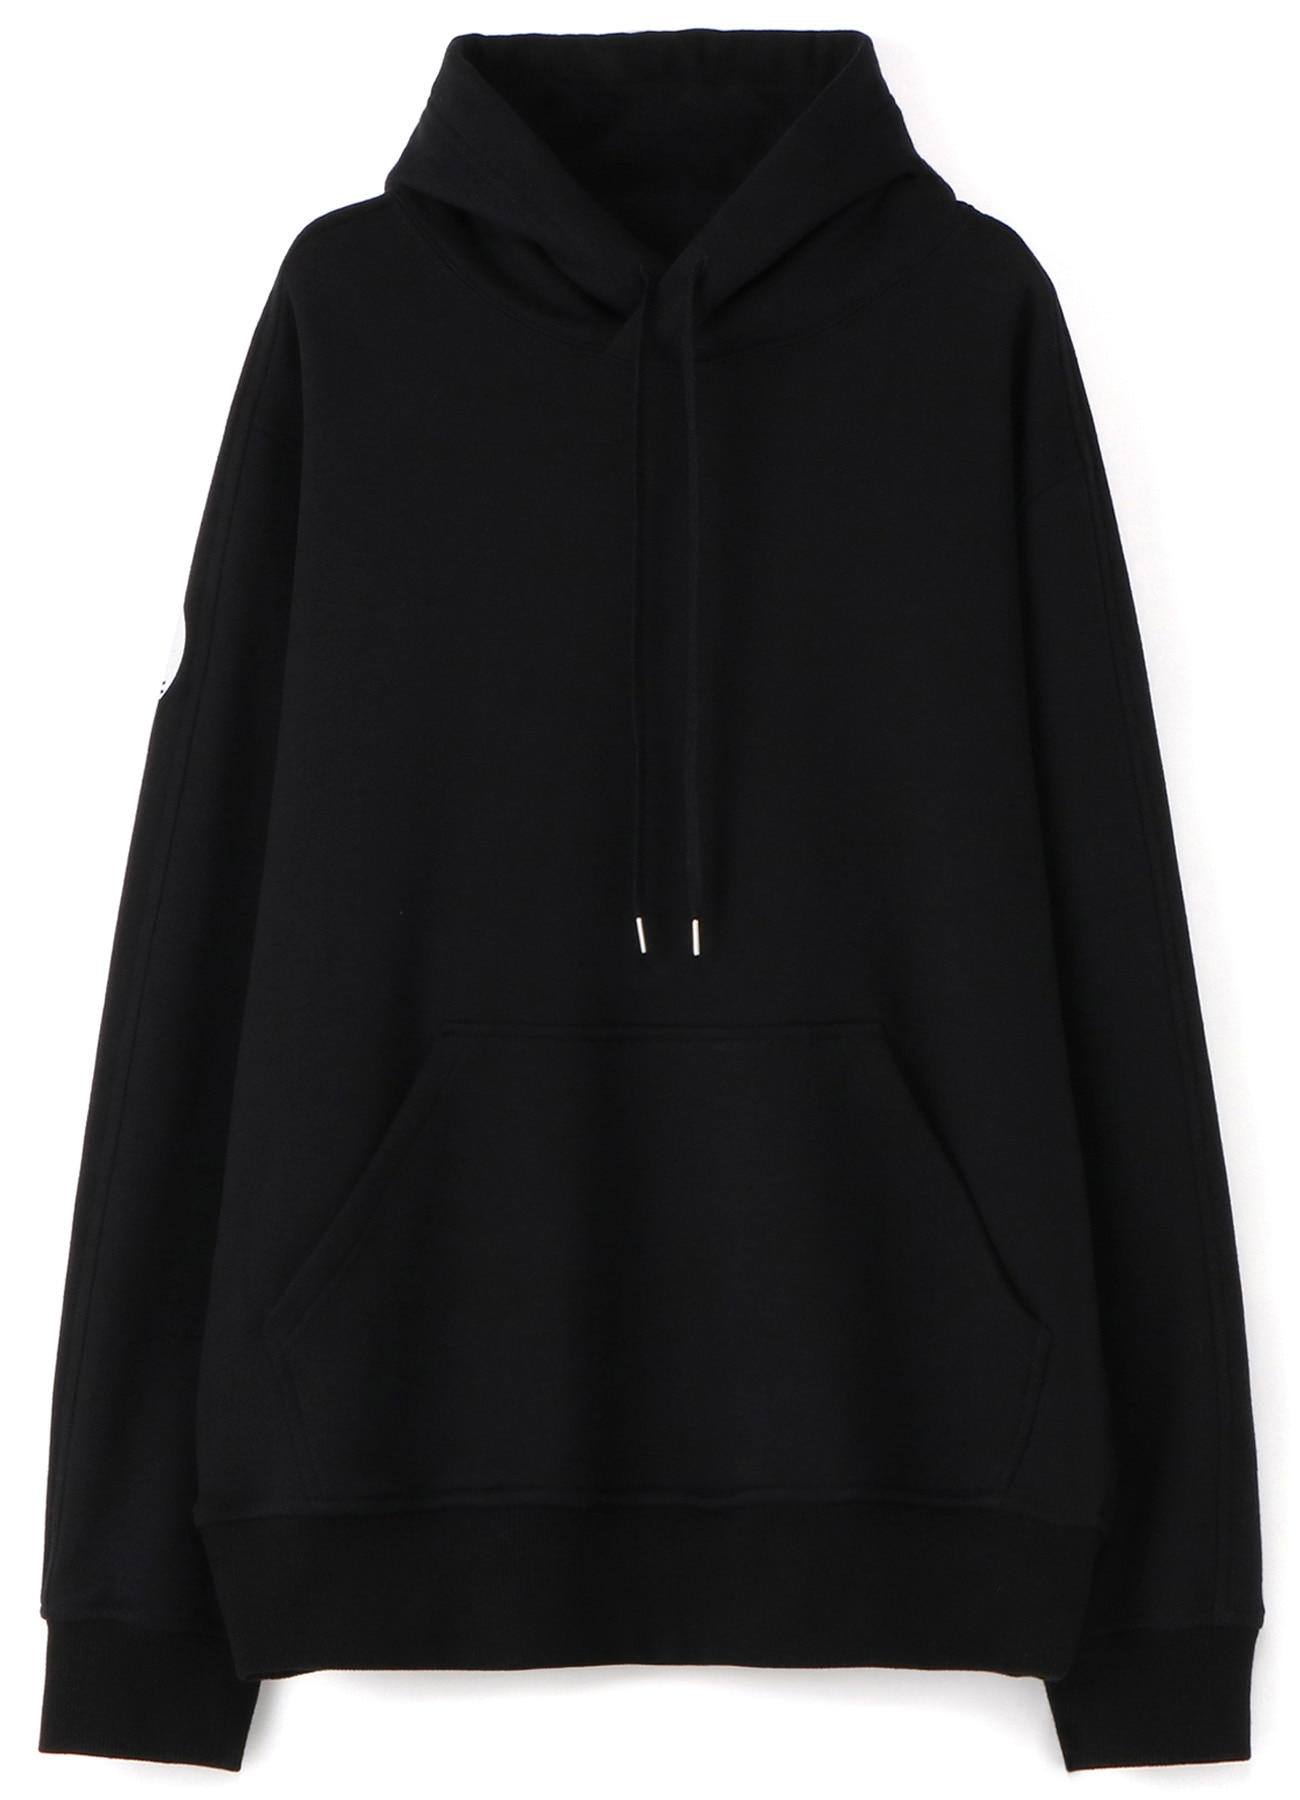 French Terry Stitch Work Message & Crow Hoodie